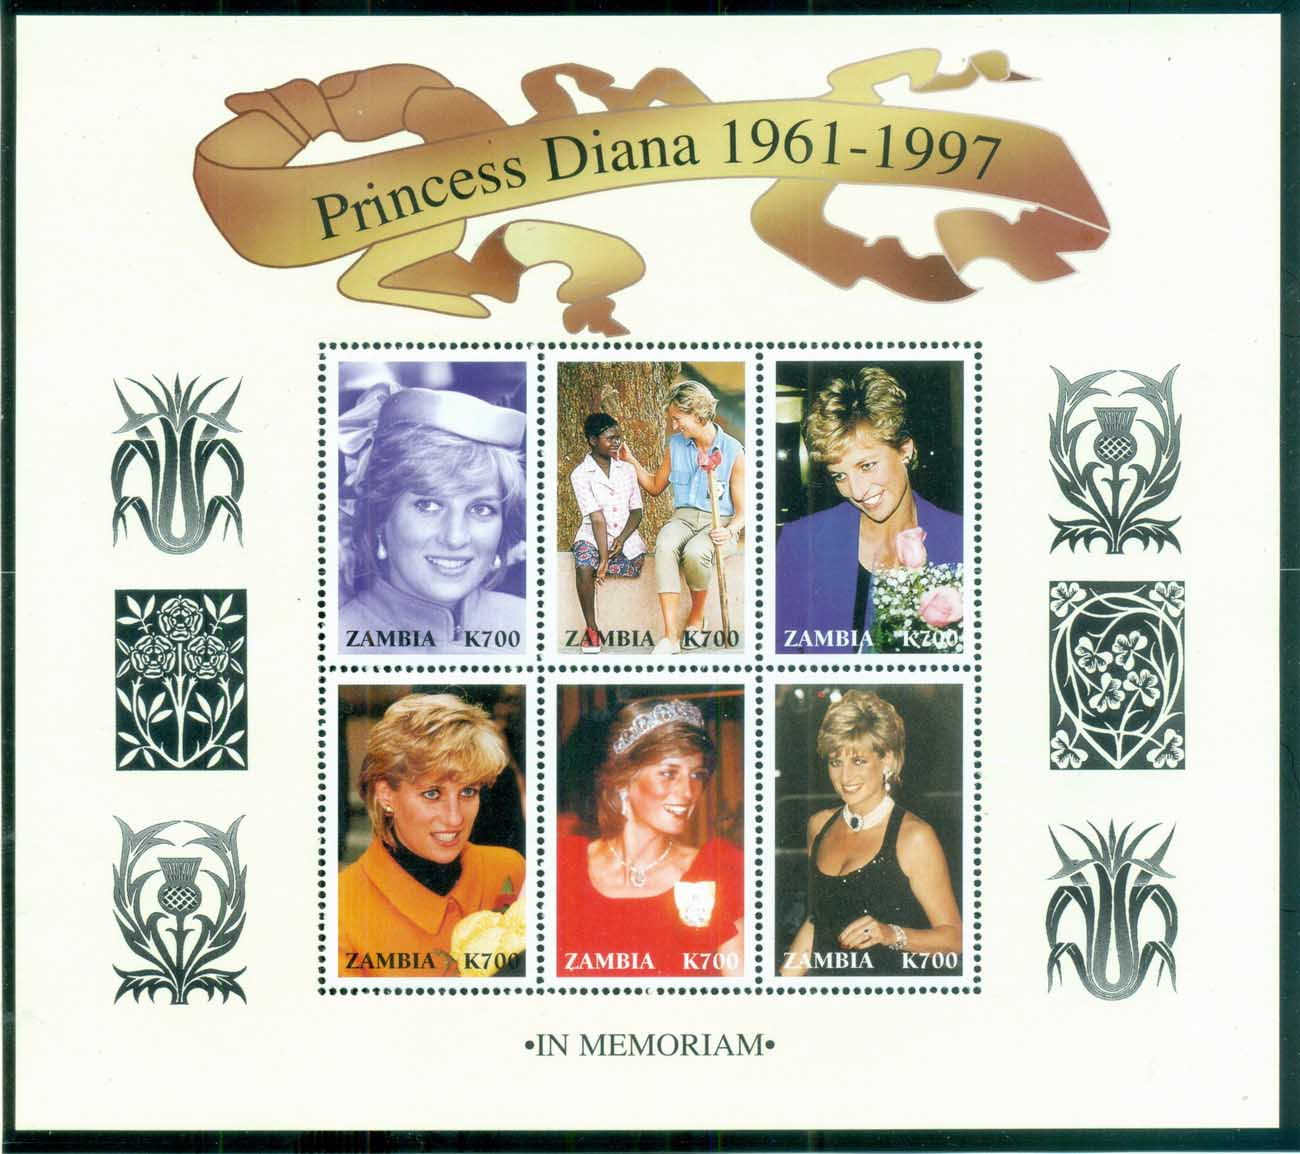 Zambia 1997 Princess Diana in Memoriam, Diana Out & About 700k MS MUH